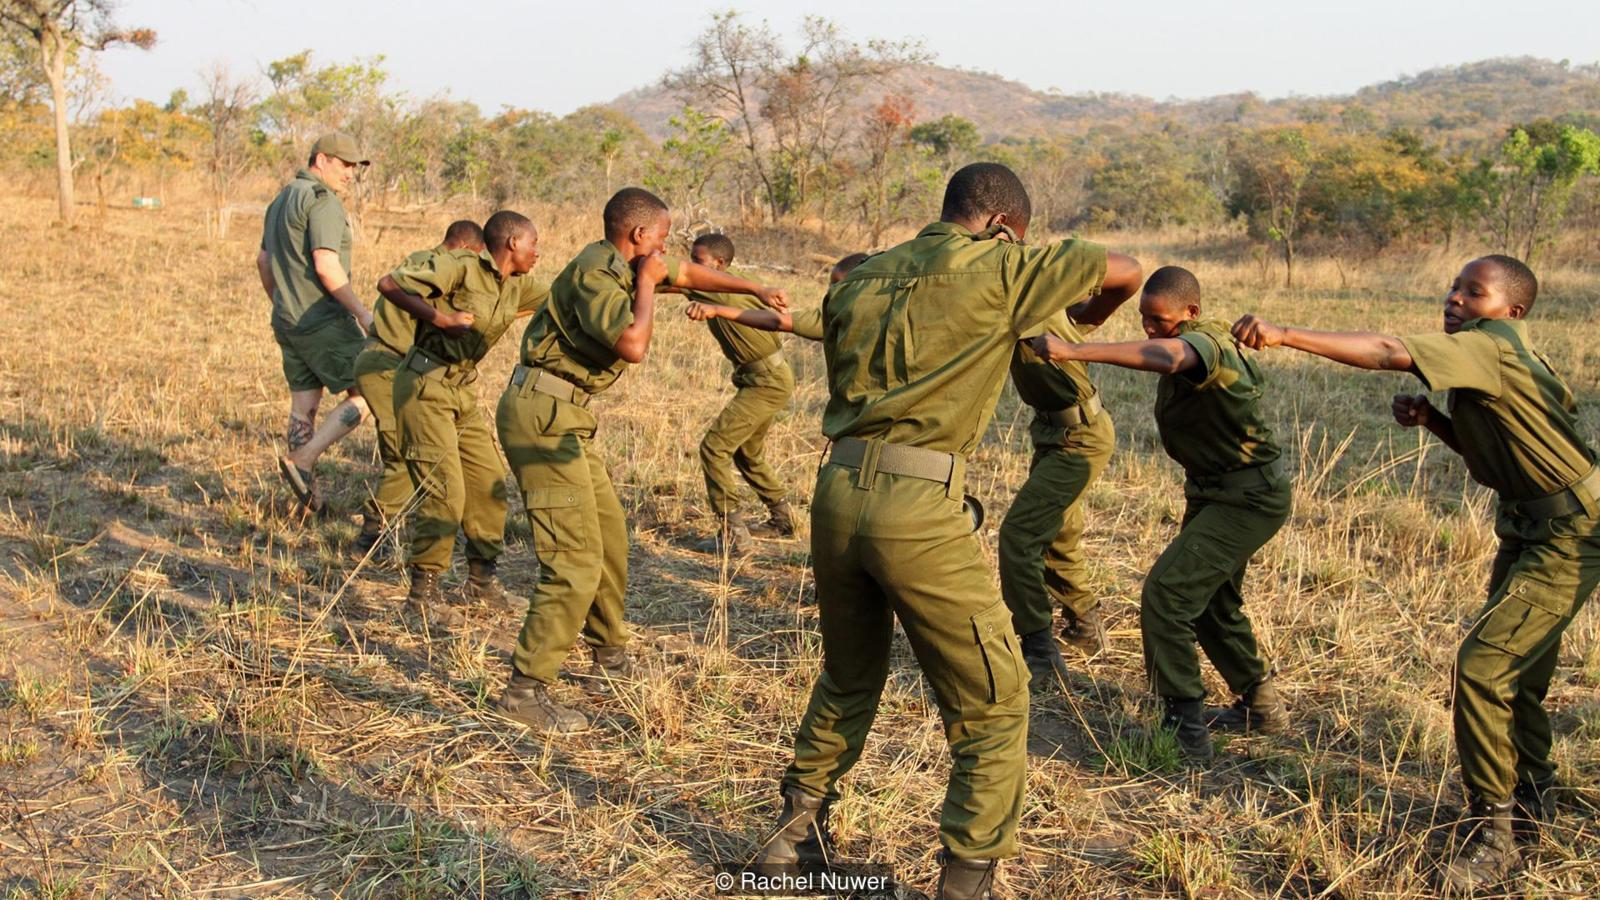 zimbabwe-akashinga-all-women-rangers-in-africa-fighting-poaching.jpg